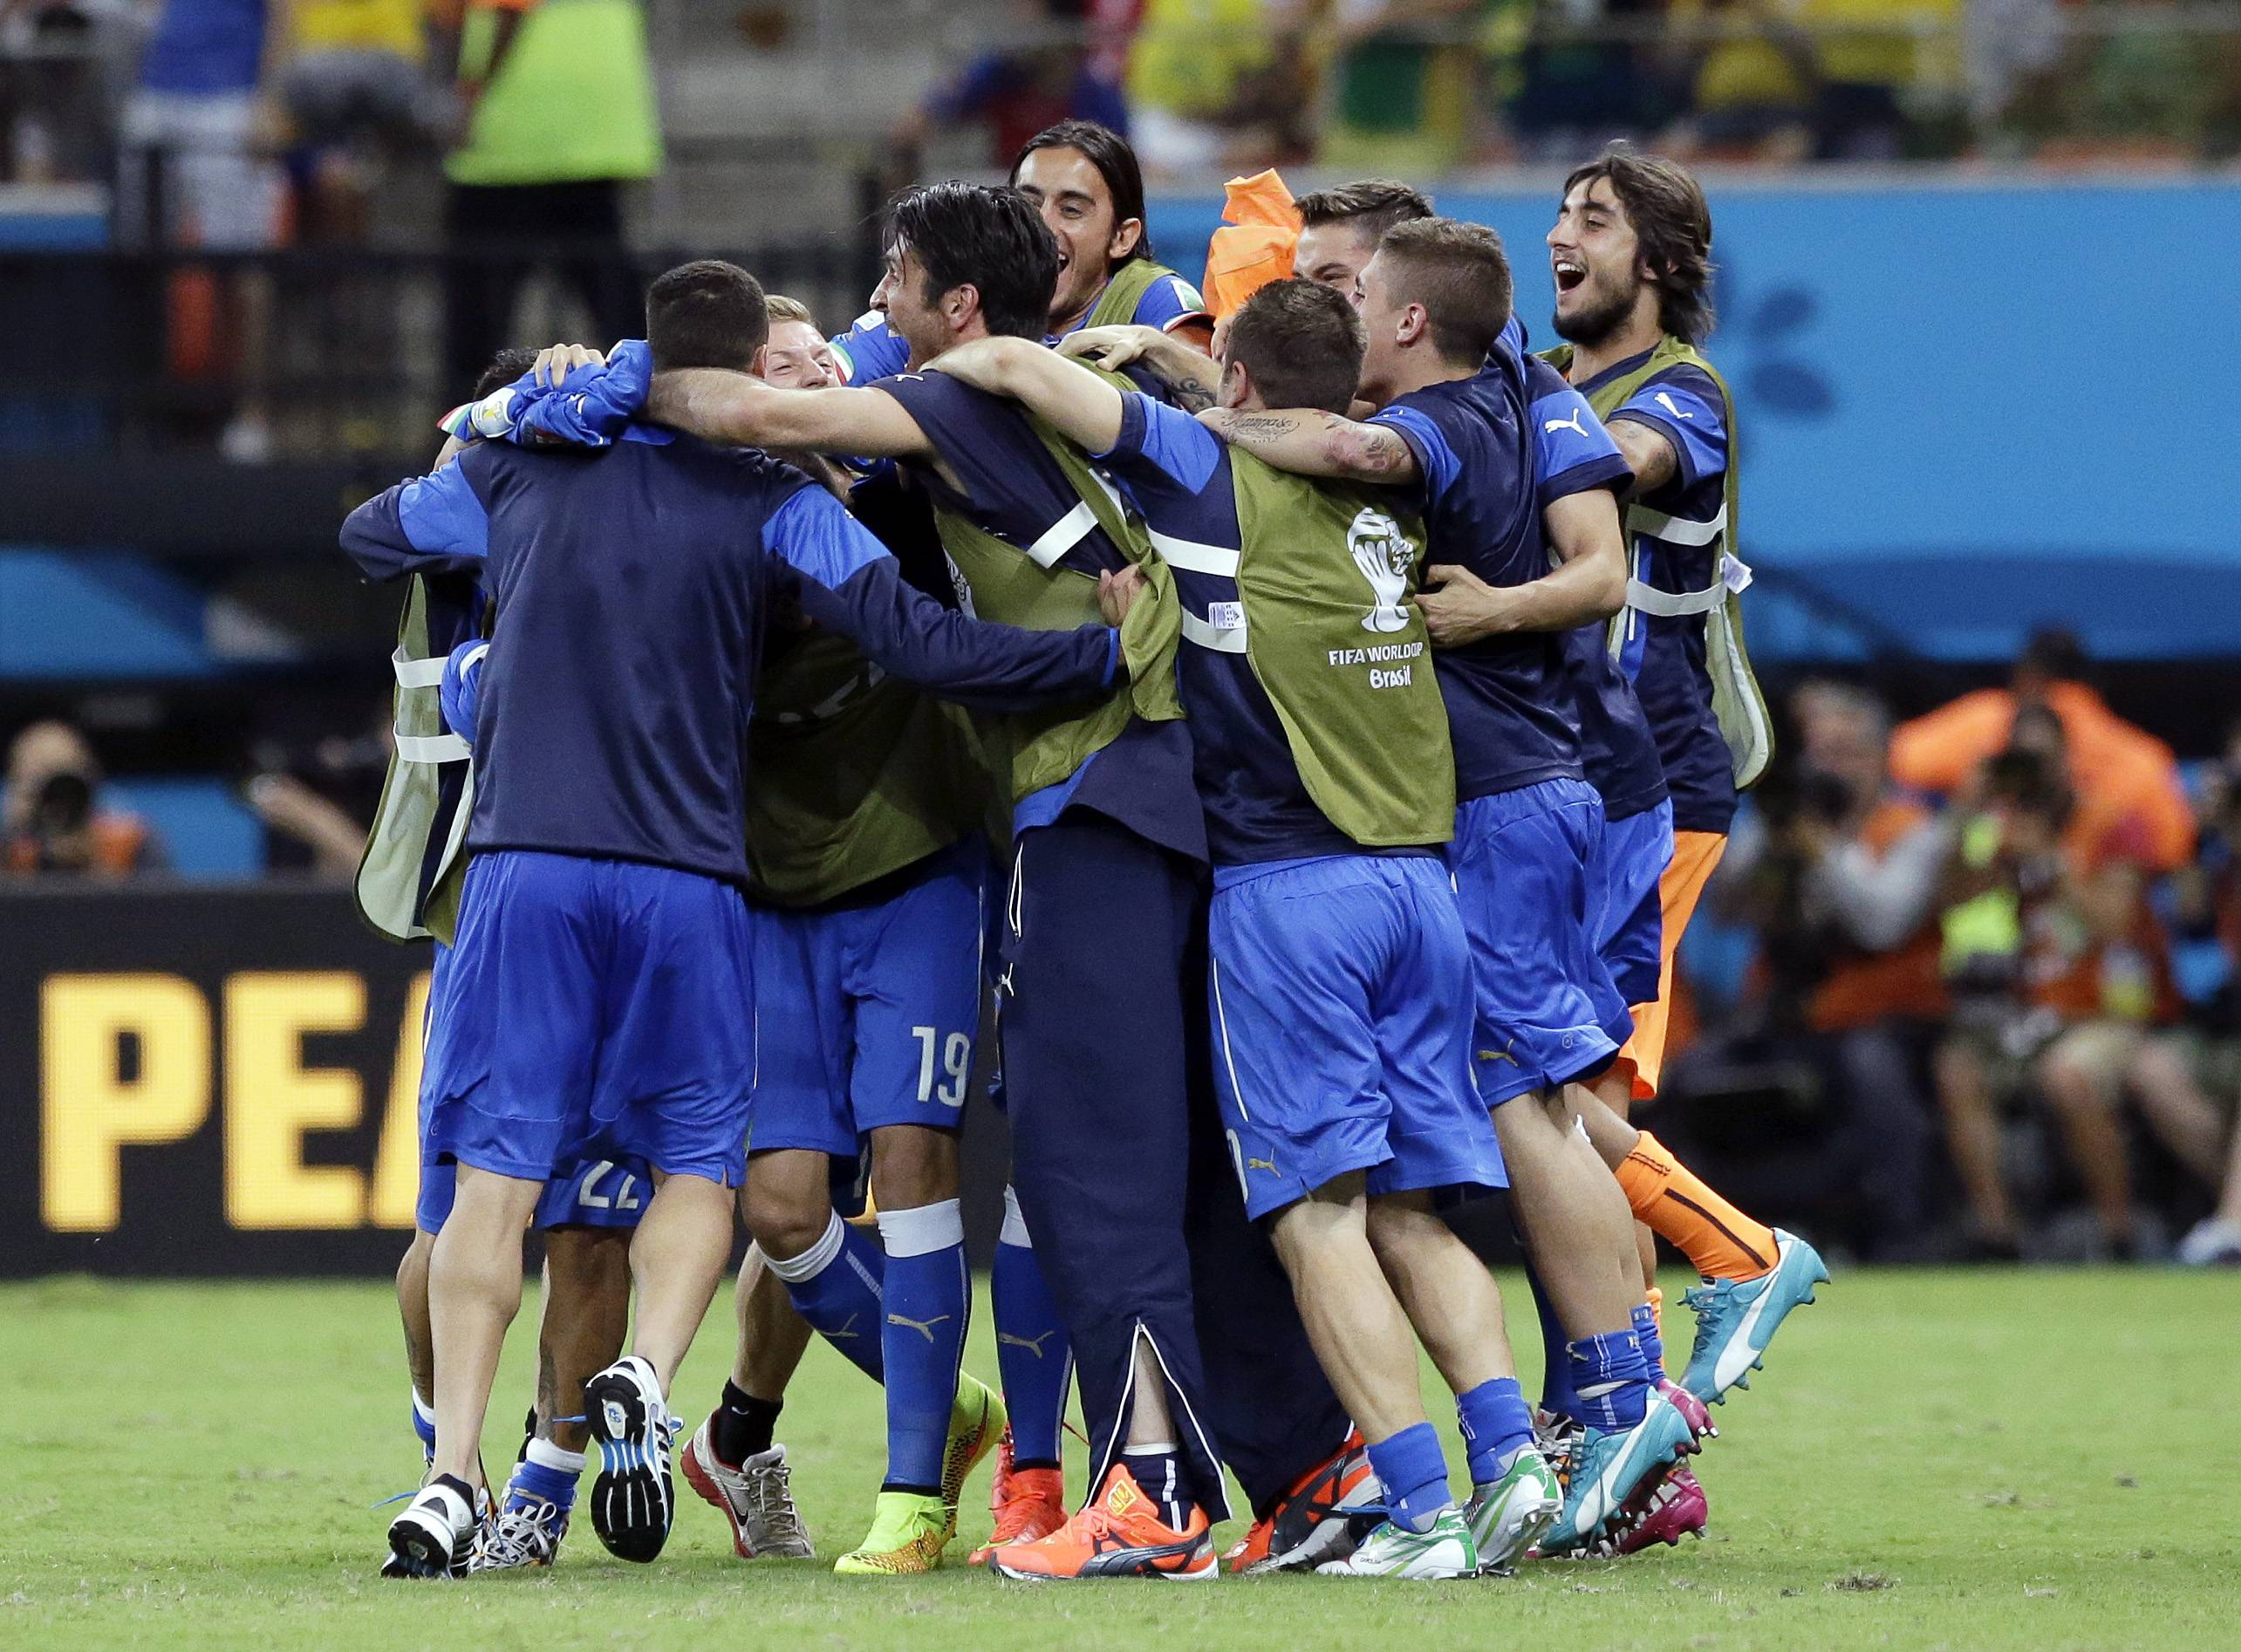 Italian players celebrate after the group D World Cup soccer match between England and Italy at the Arena da Amazonia in Manaus, Brazil, Saturday, June 14, 2014. Italy won the match 2-1.